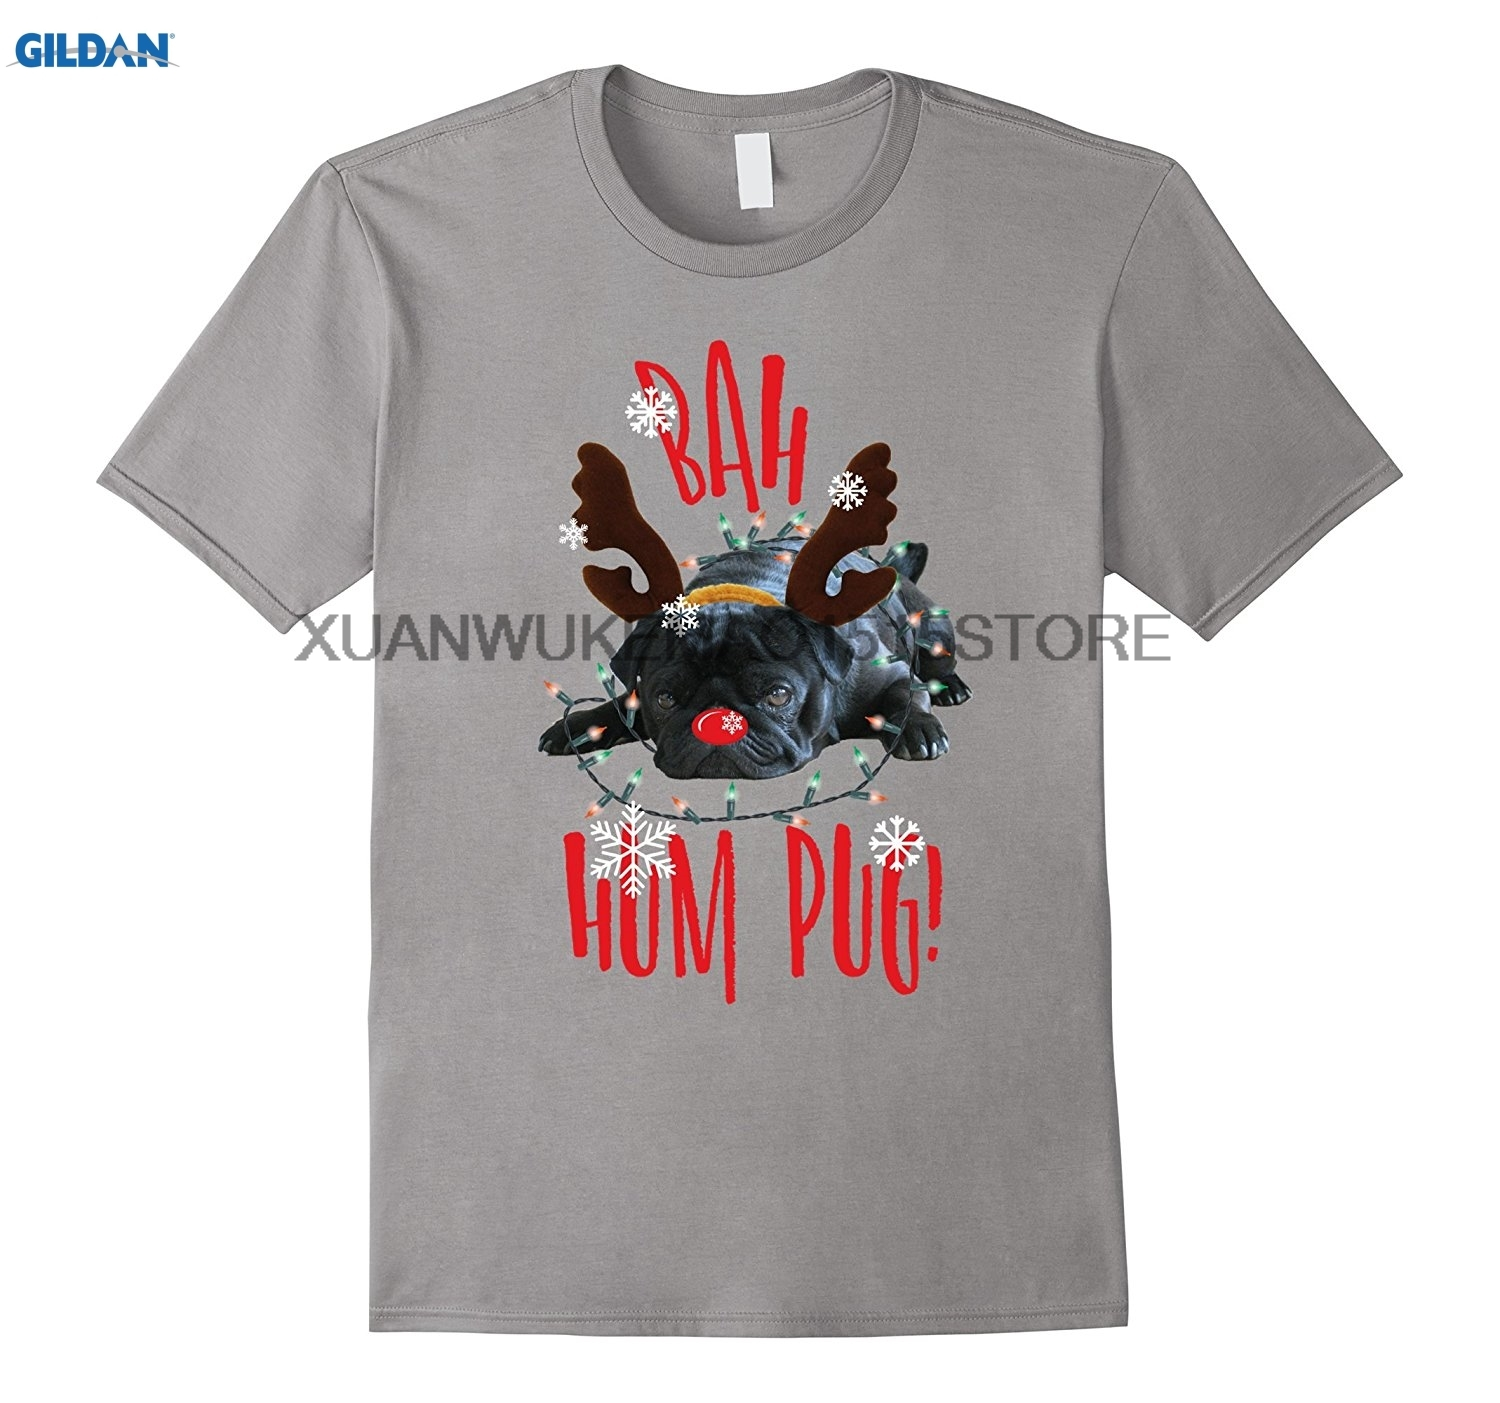 GILDAN T-shirt Bah Hum Pug Black Pug Lovers Christmas T shirt